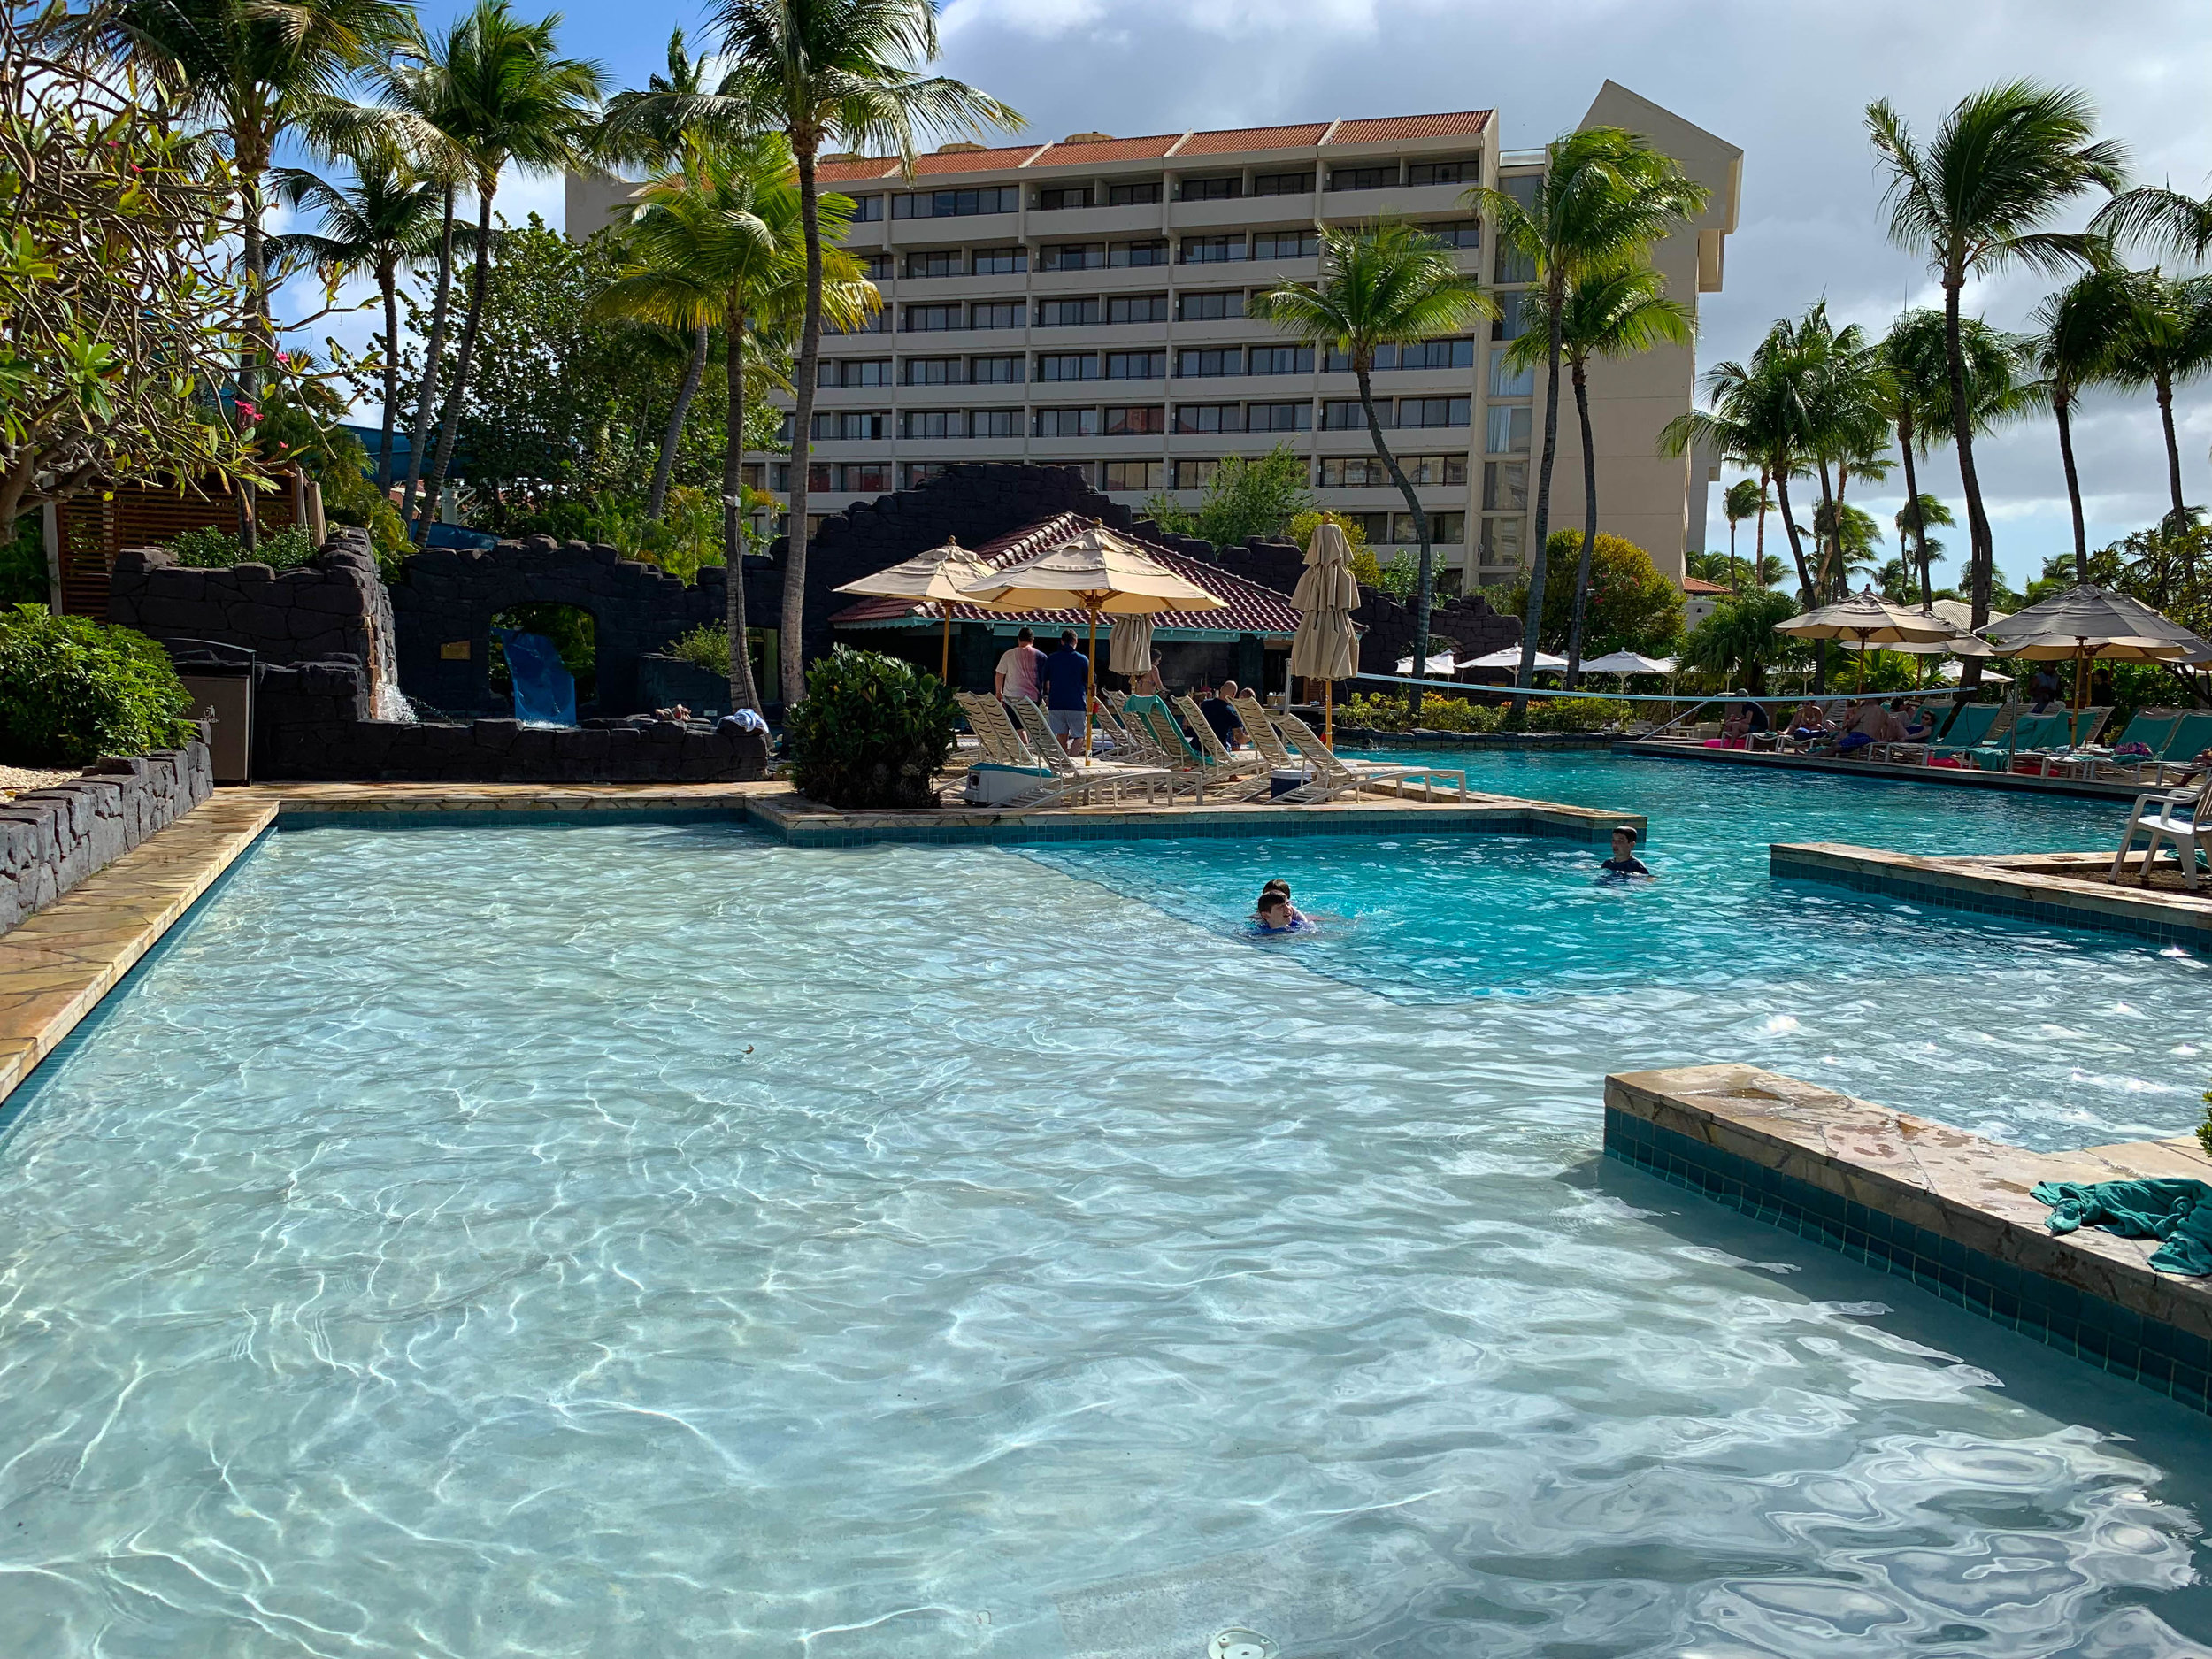 Hyatt Regency Aruba Pool